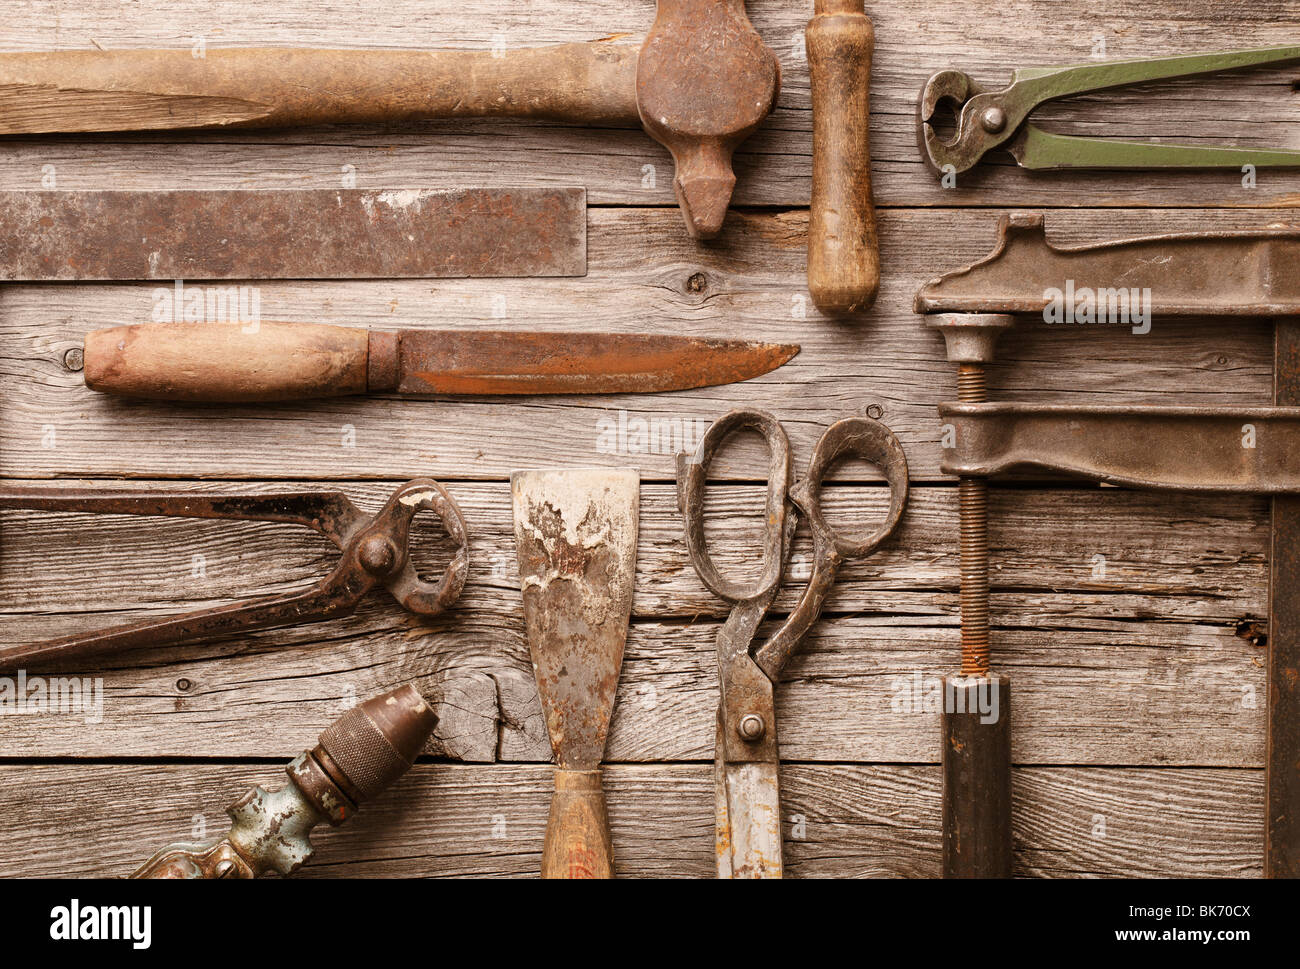 A collection of old rusty tools - Stock Image